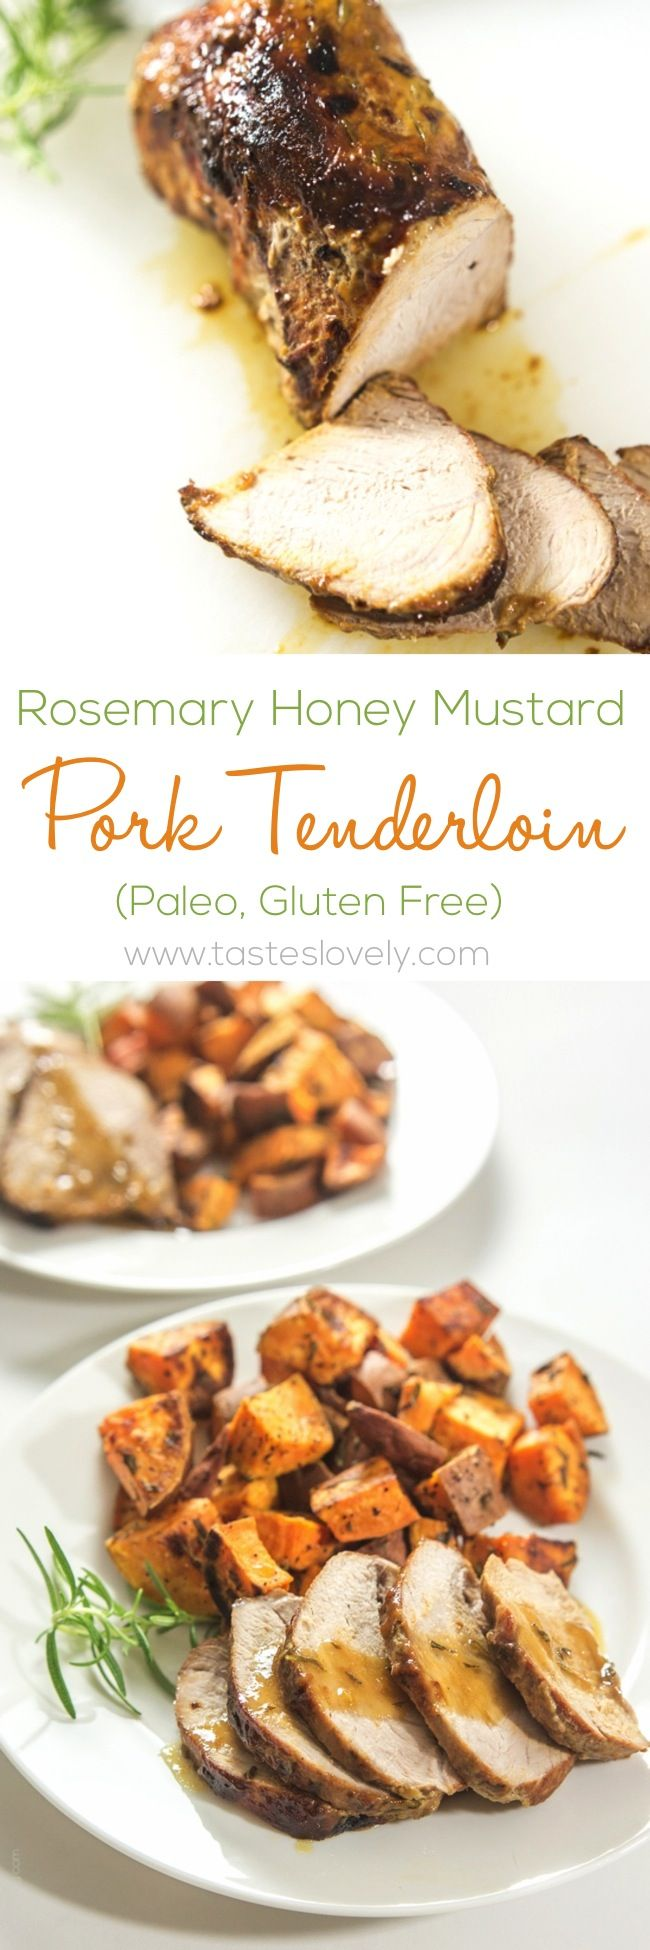 Rosemary Honey Mustard Pork Tenderloin #paleo #glutenfree